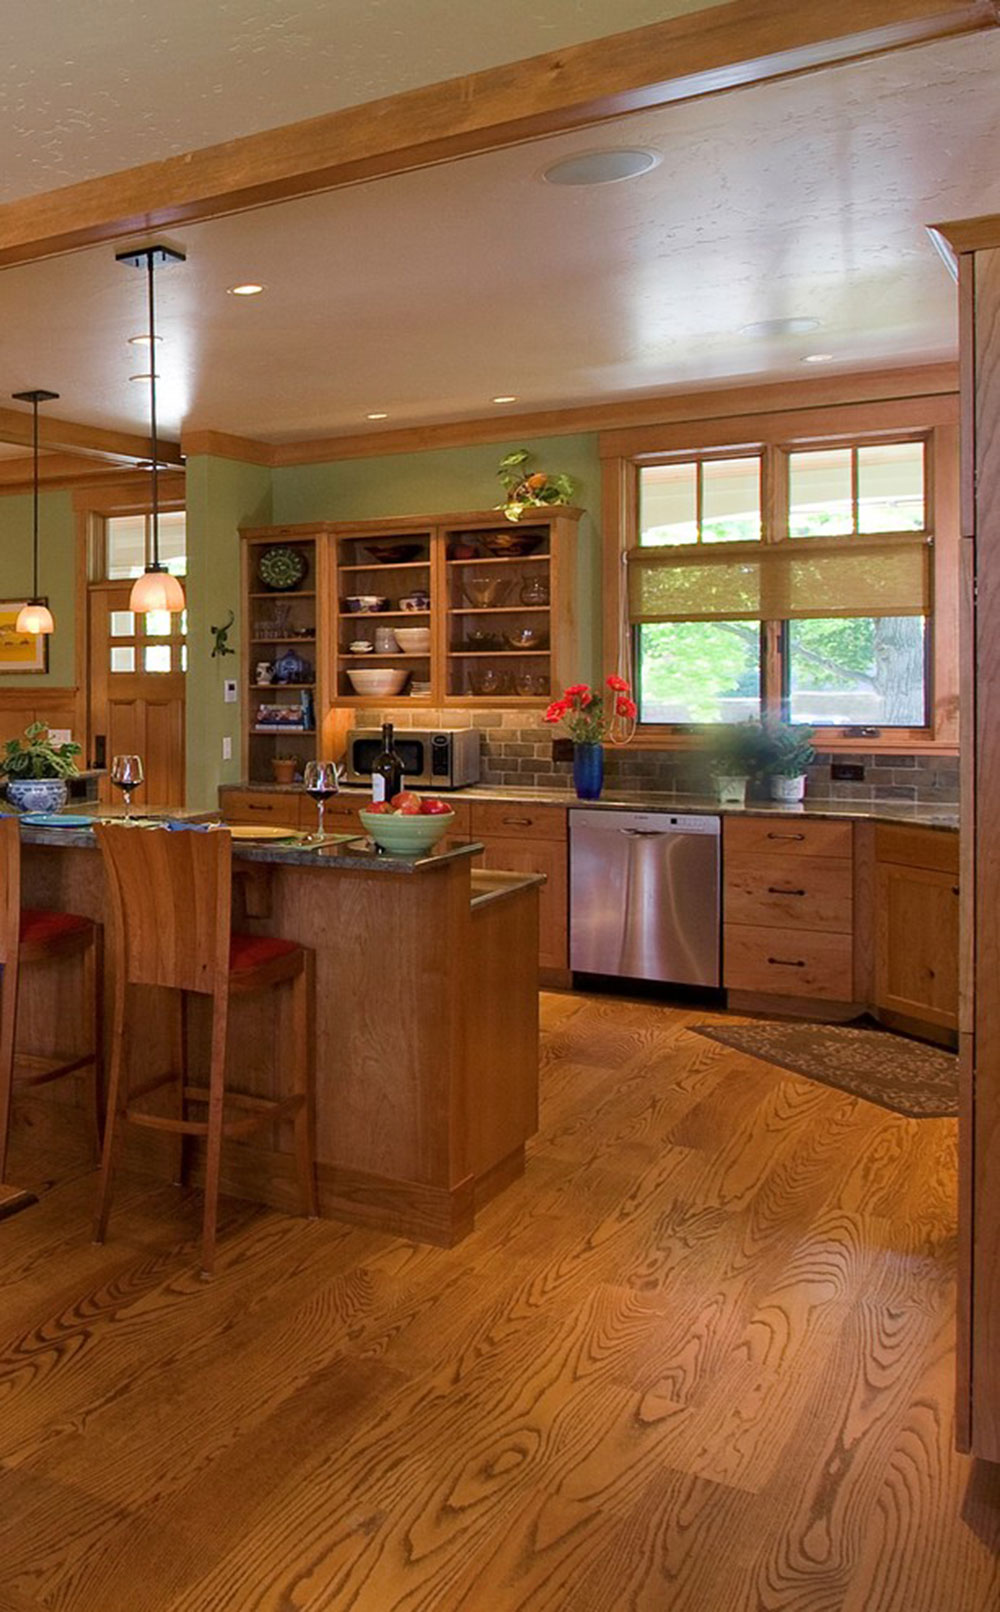 Open kitchen cabinets are easier to use11 Open kitchen cabinets are easier to use